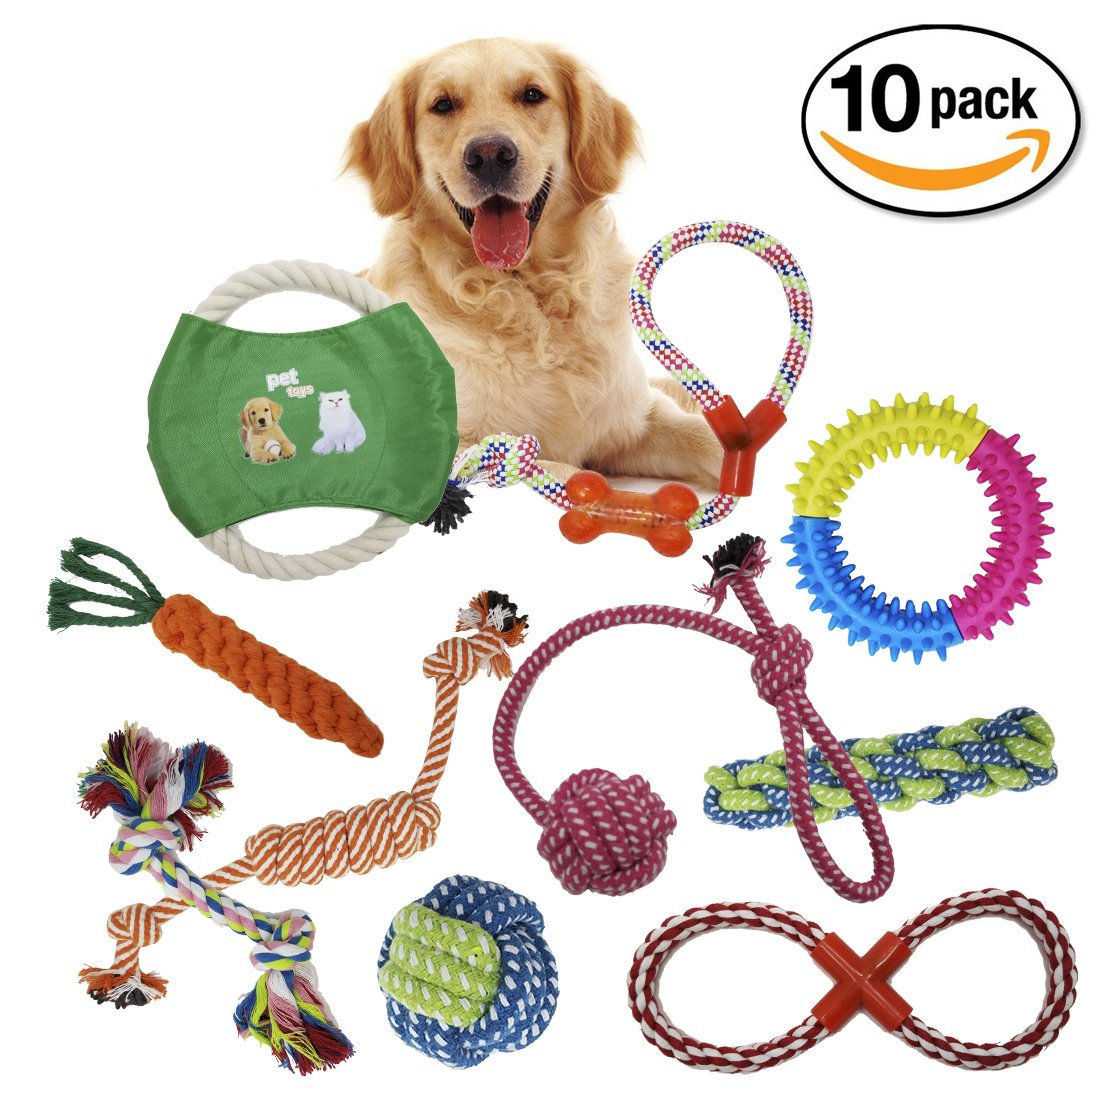 PAWCREW Dog Rope Toys 10 Pack Set Pet Puppy Teething Chew Rope Tug Assortment for Small Medium Large Dogs Breeds-Interactive Toys 100% Safe-Knots Bones Balls Frisbee